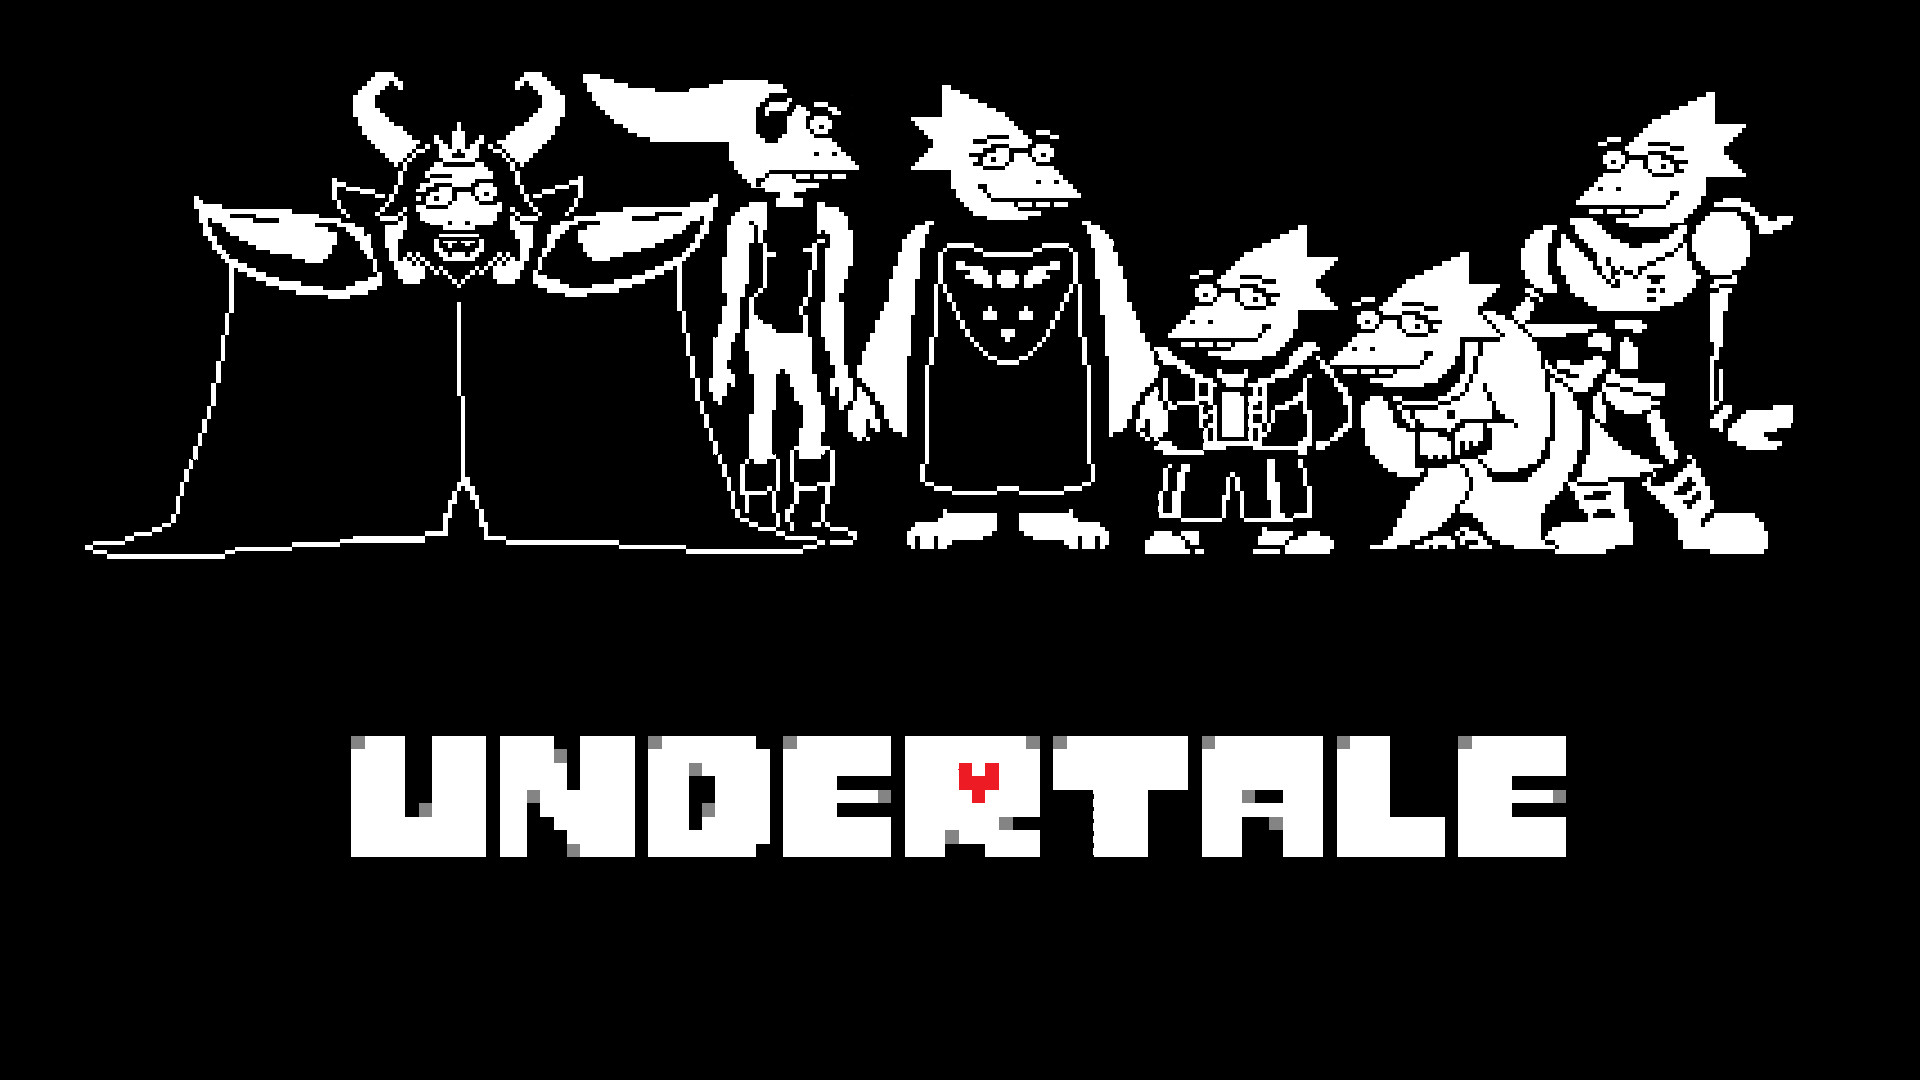 Remember the guy that made cringy undertale wallpapers? That's me. Your  welcome.